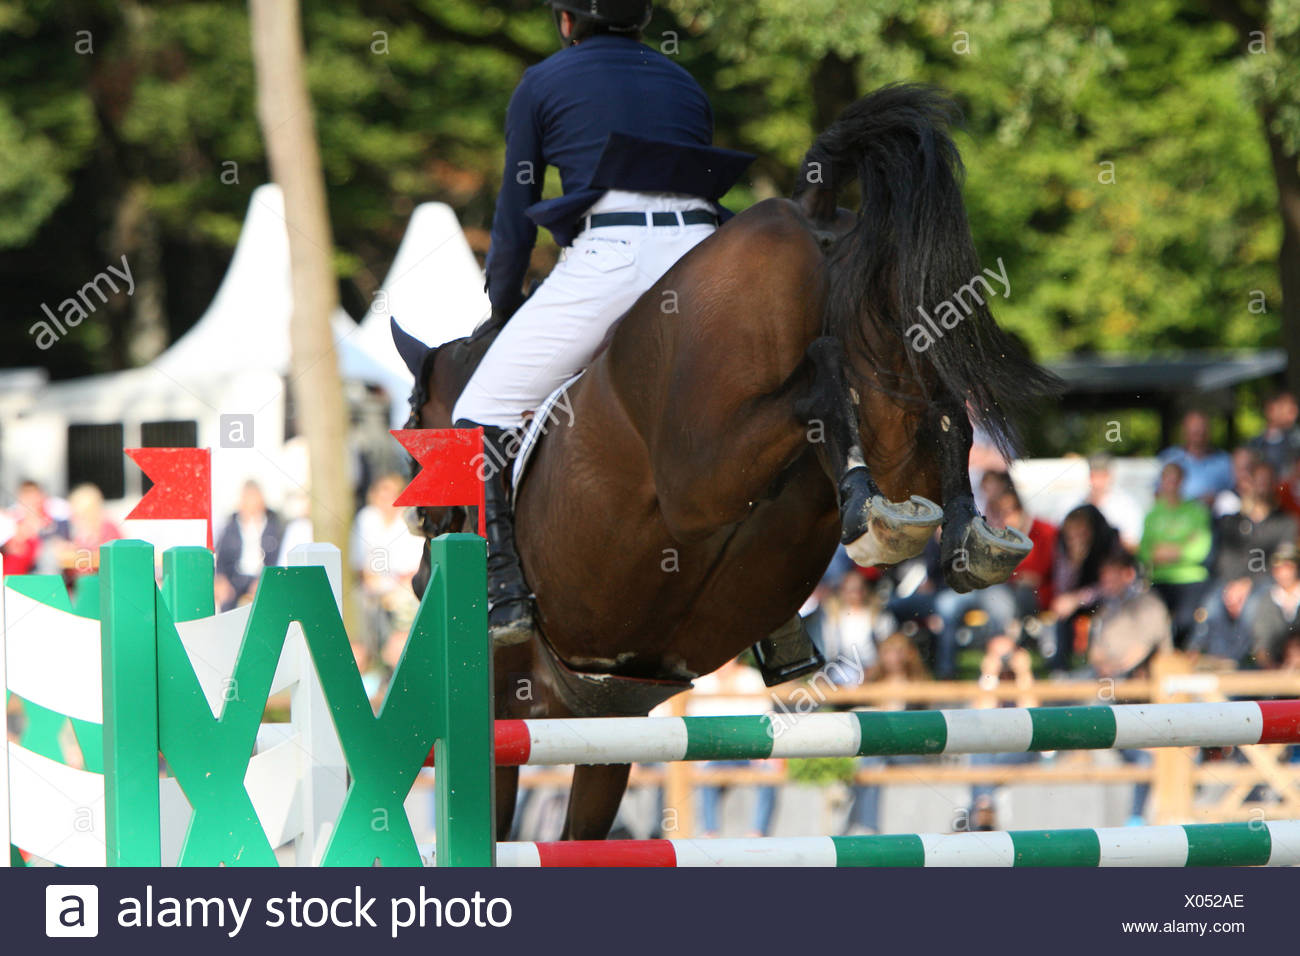 brown horse jump over a barricade - Stock Image